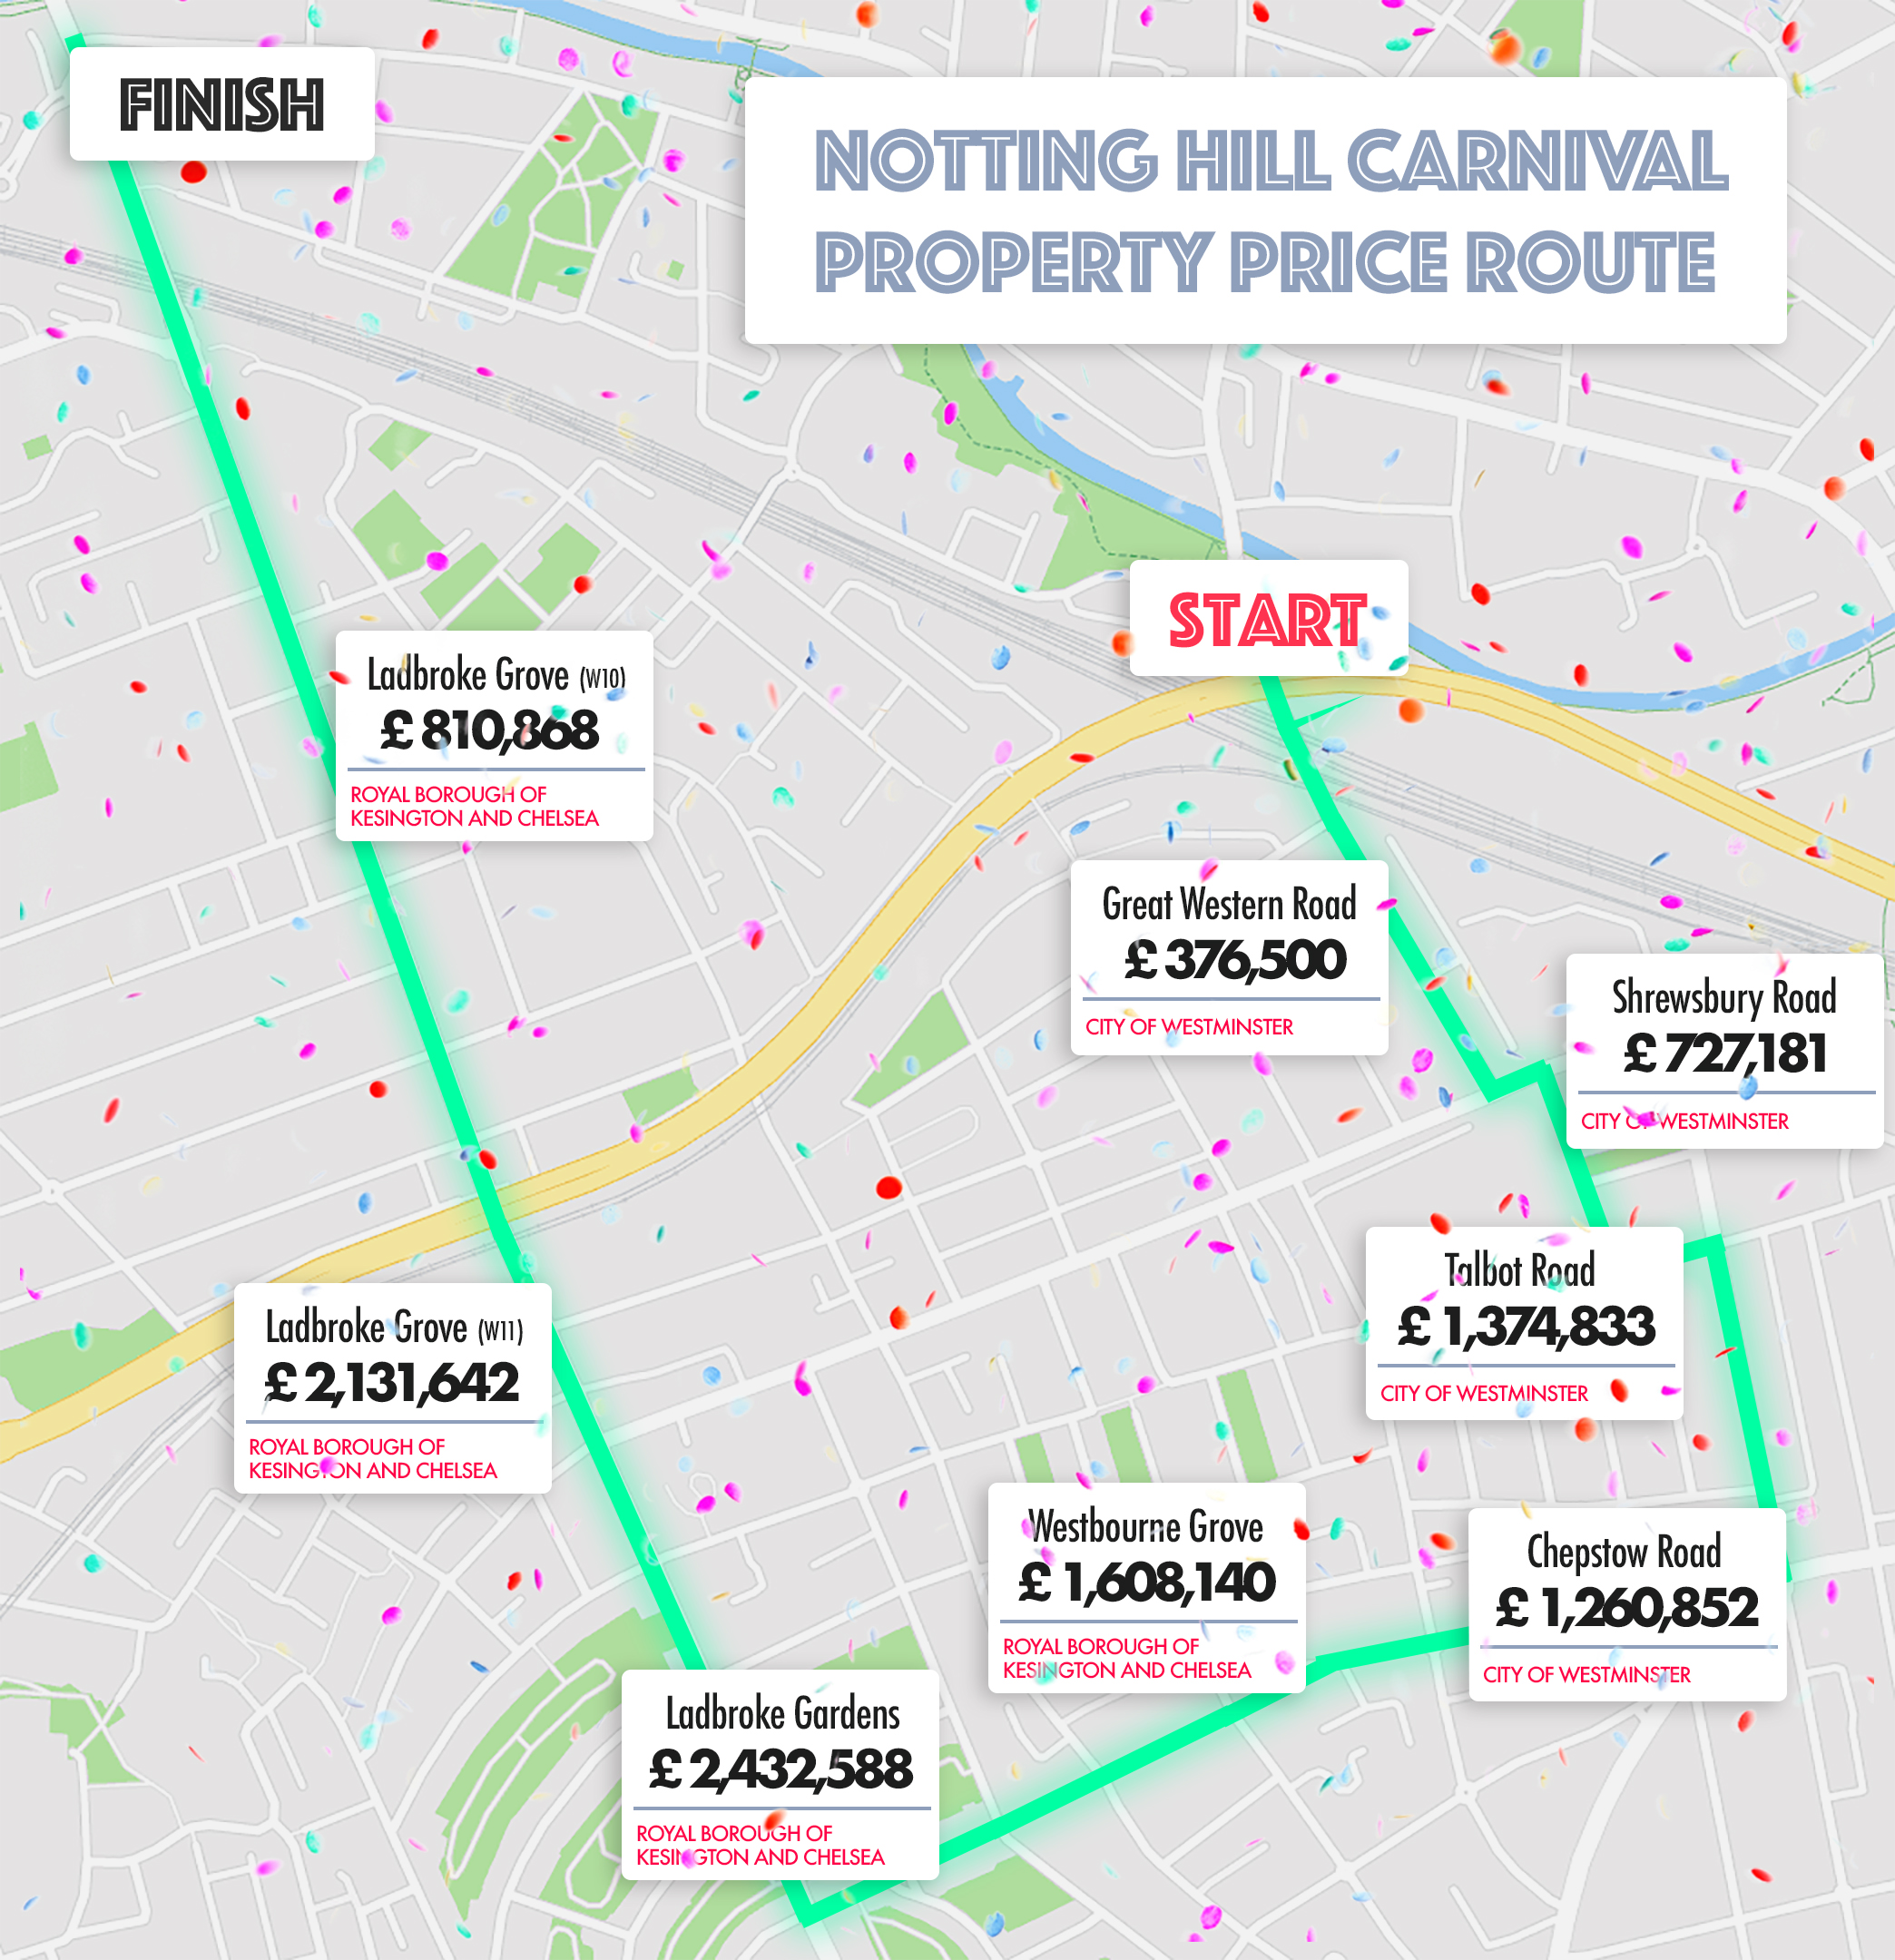 The Notting Hill Carnival Property Price Route